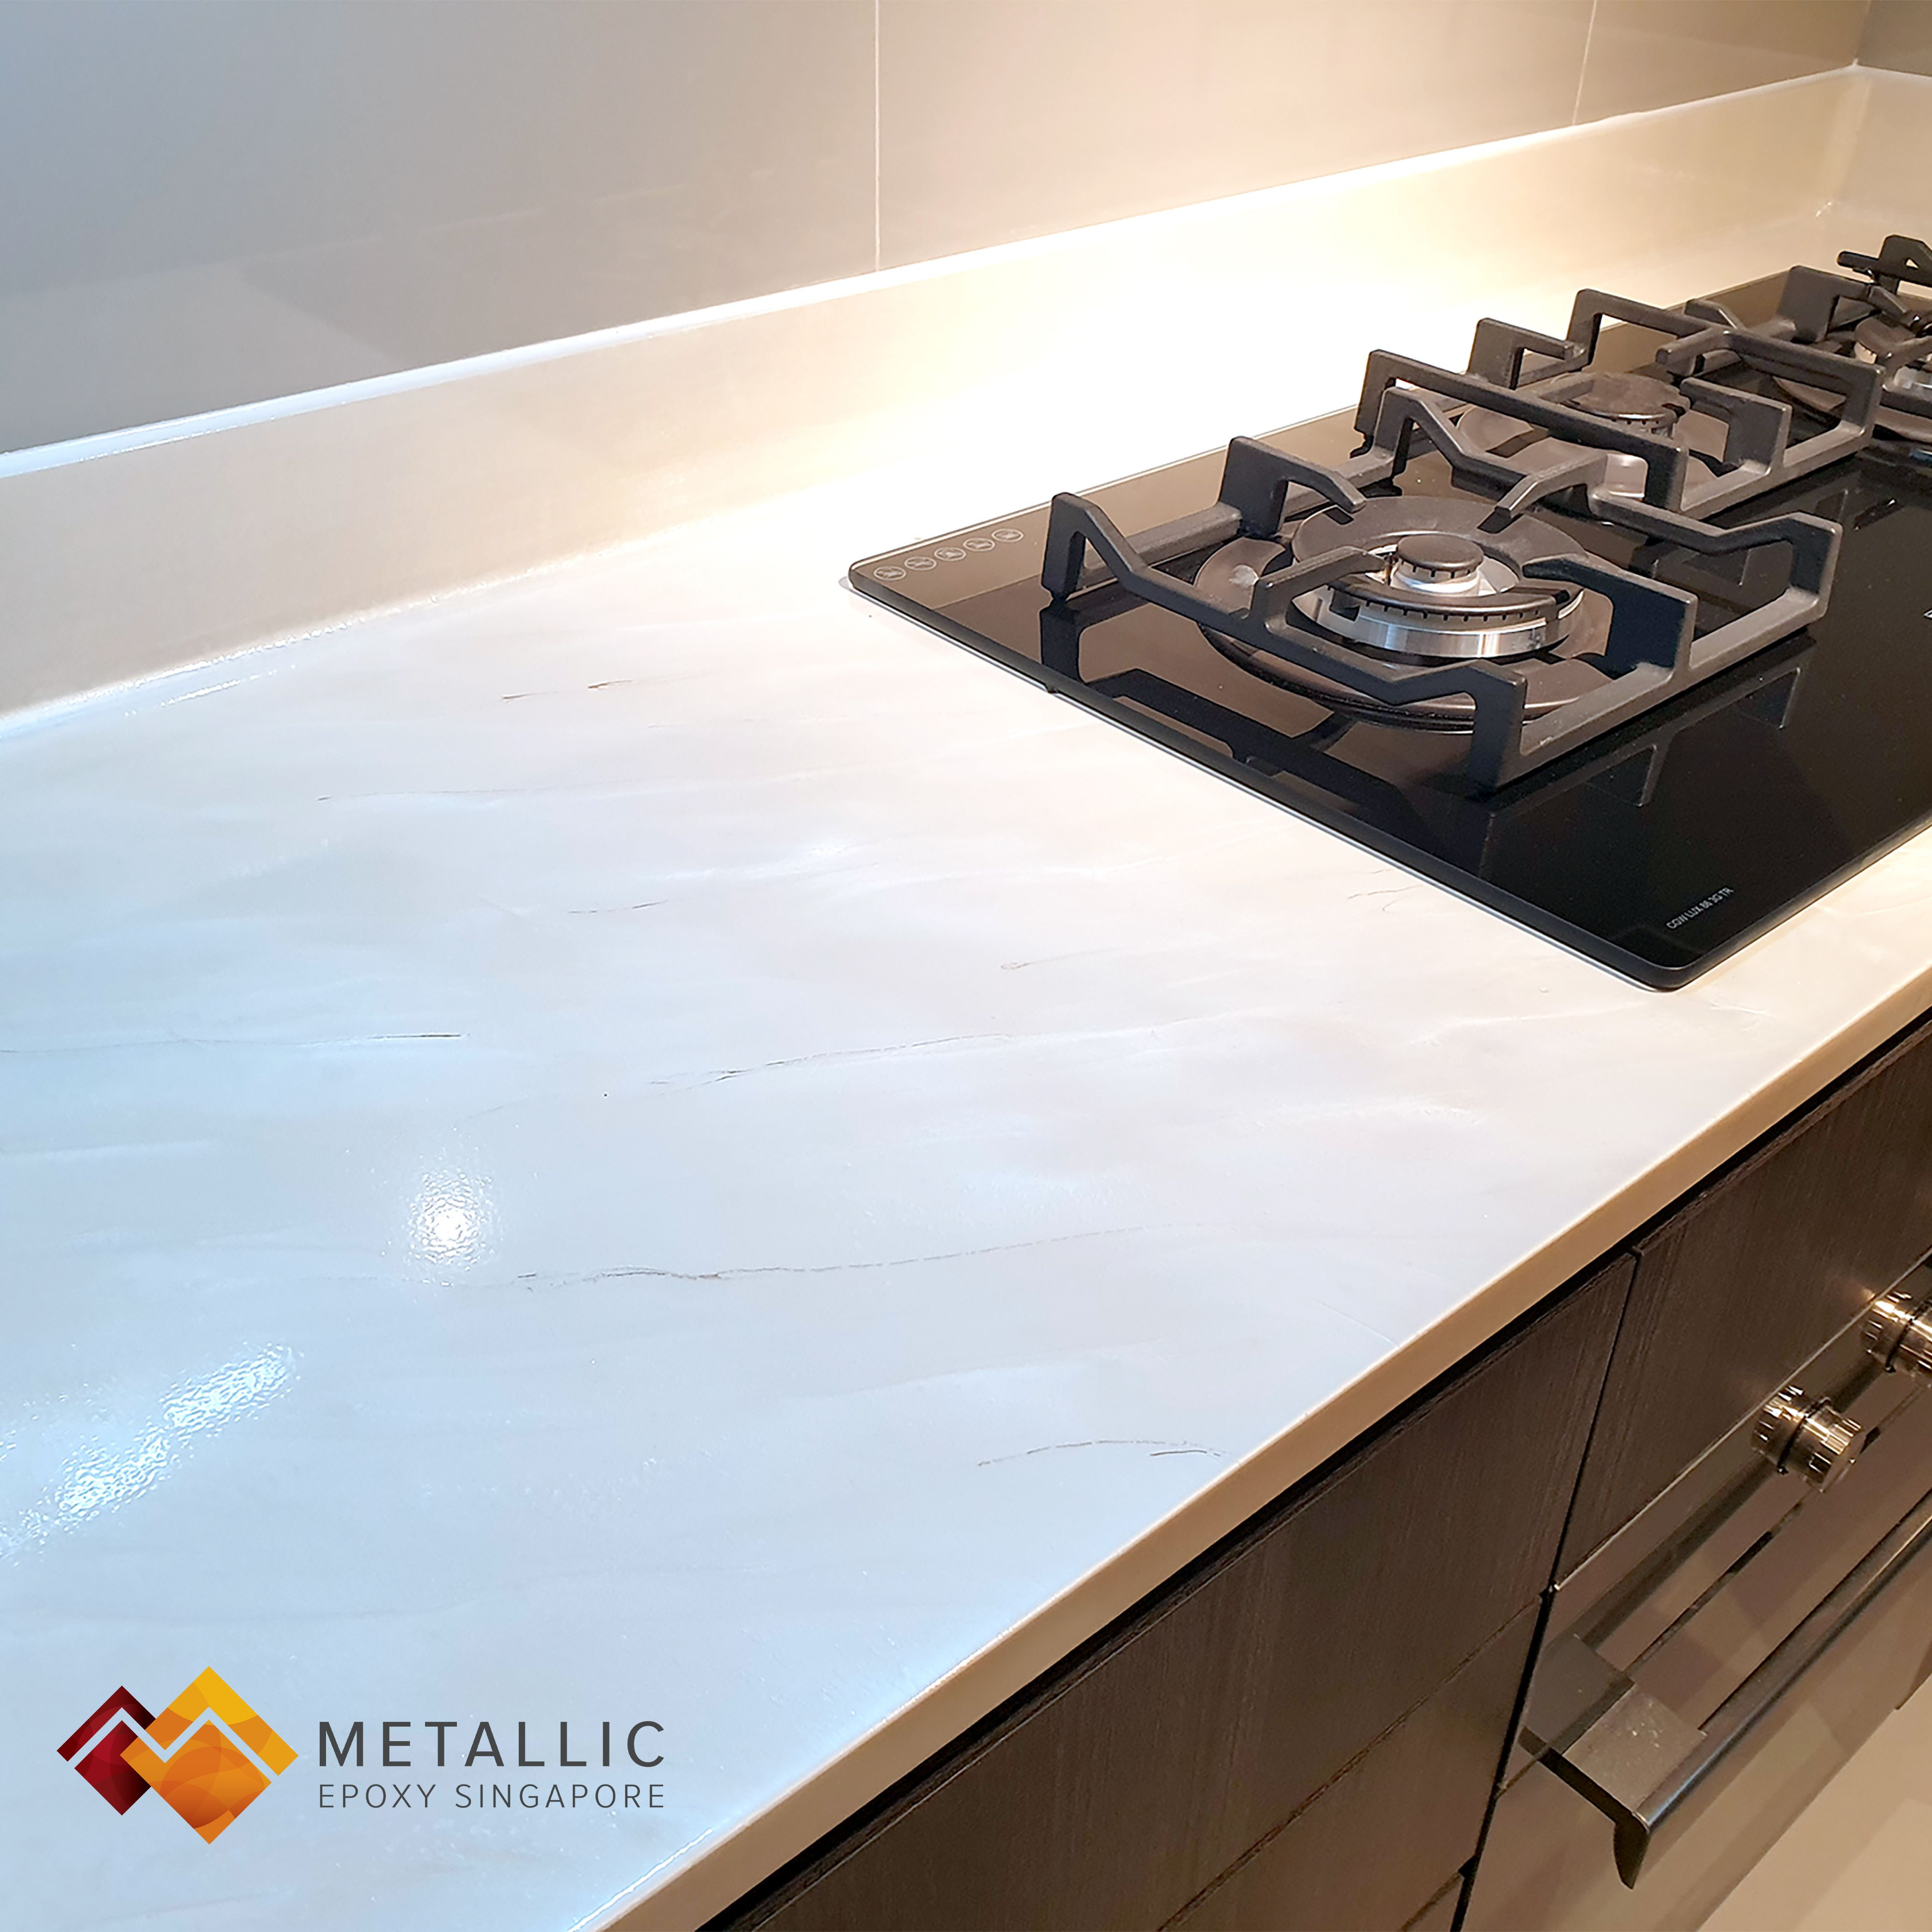 A Luxurious New Look For This Home Space With A Gorgeous Light Khaki Marble Theme Countertop Coating Metallic Countertop Design Epoxy Countertop Countertops